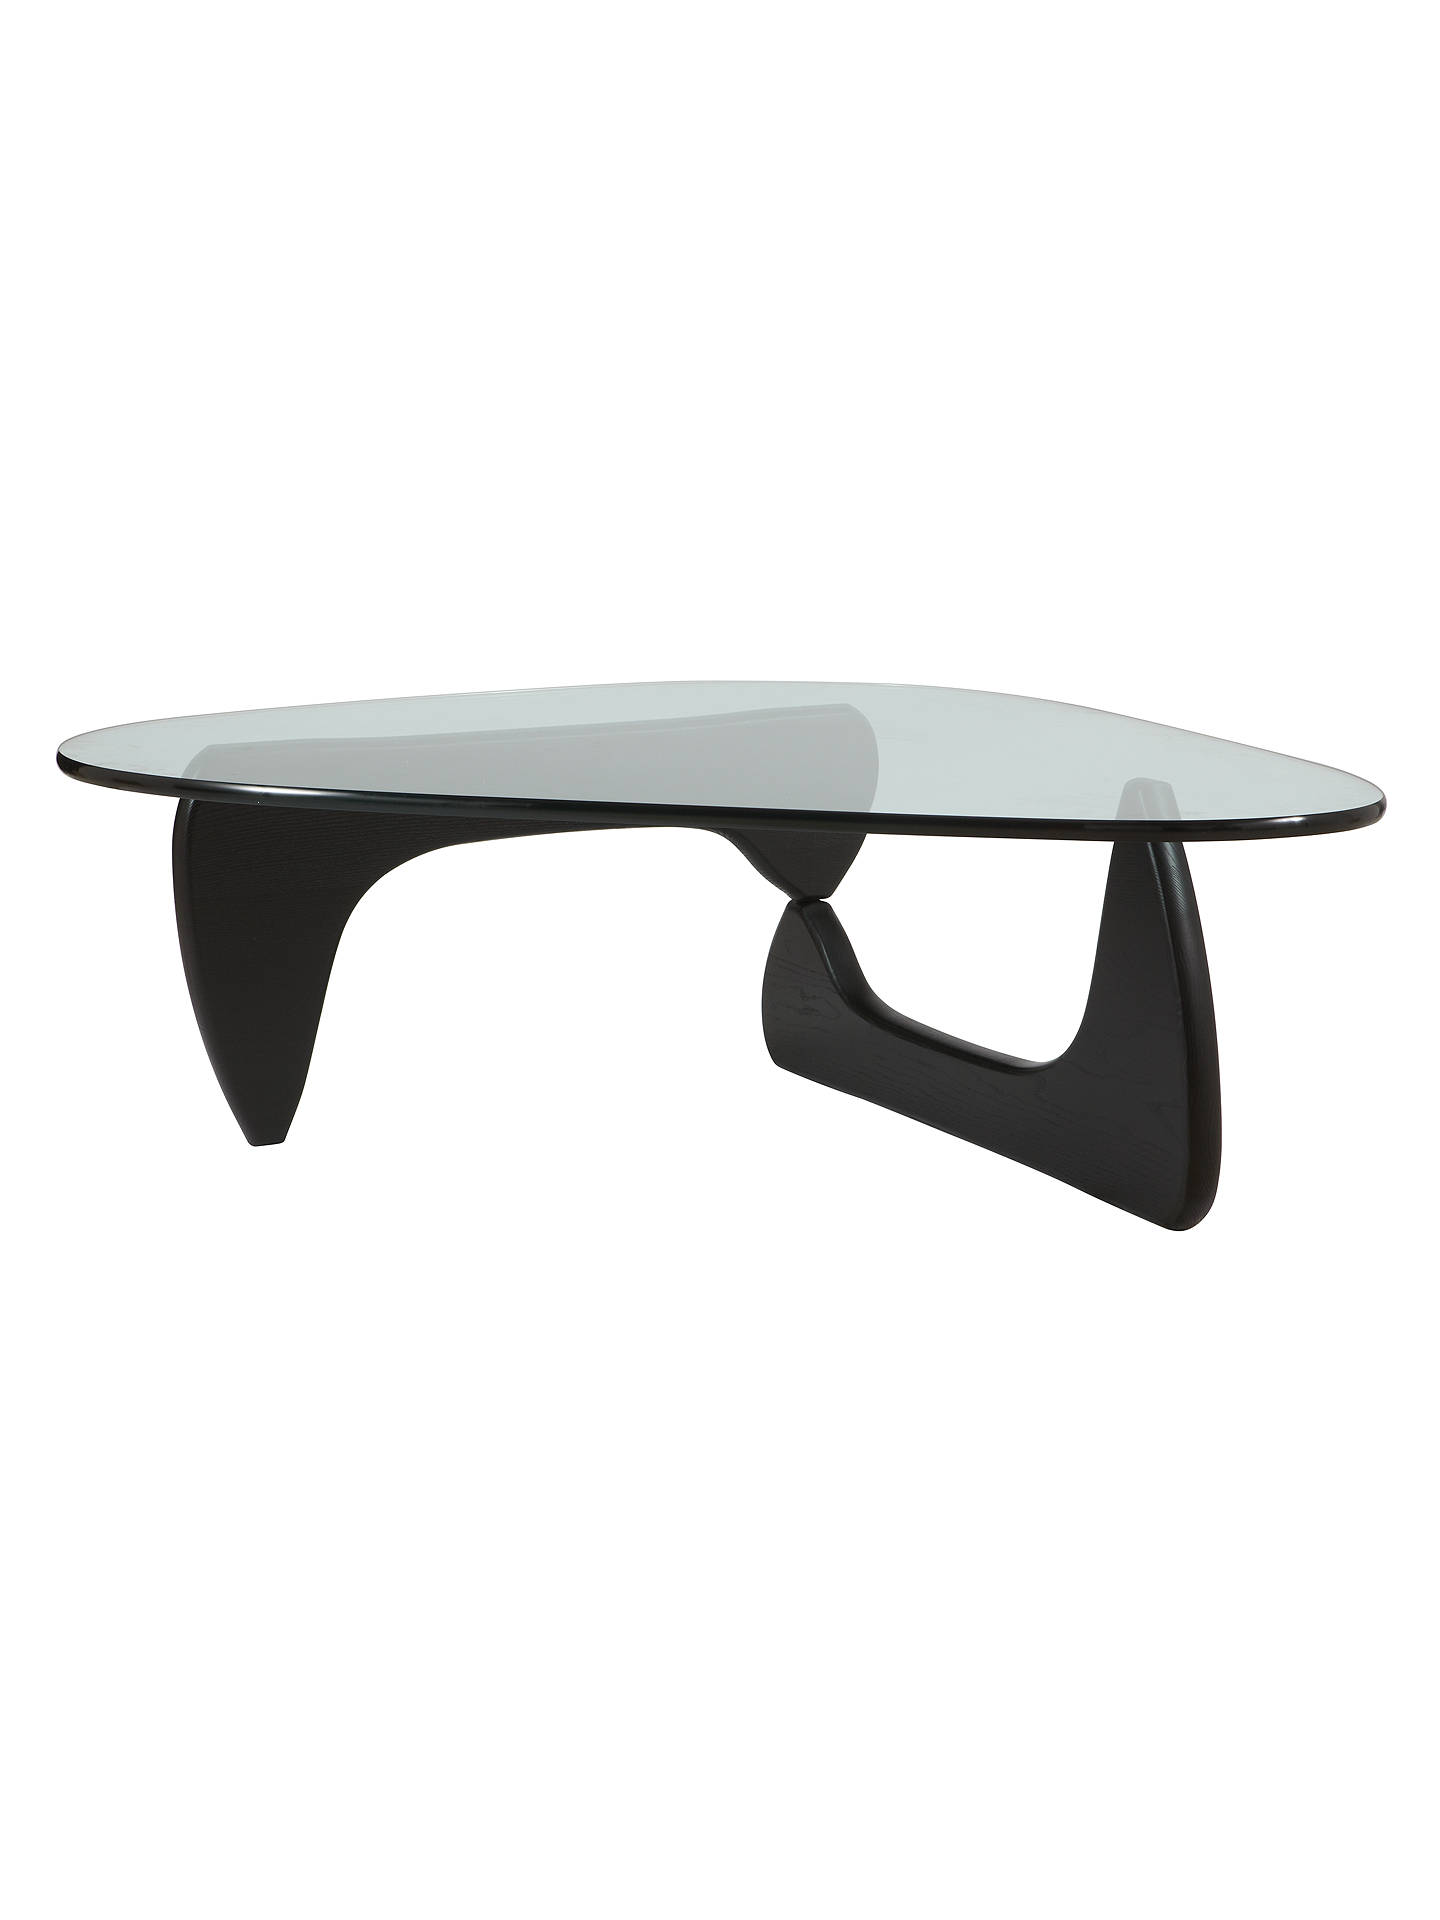 Vitra Noguchi Coffee Table At John Lewis Partners